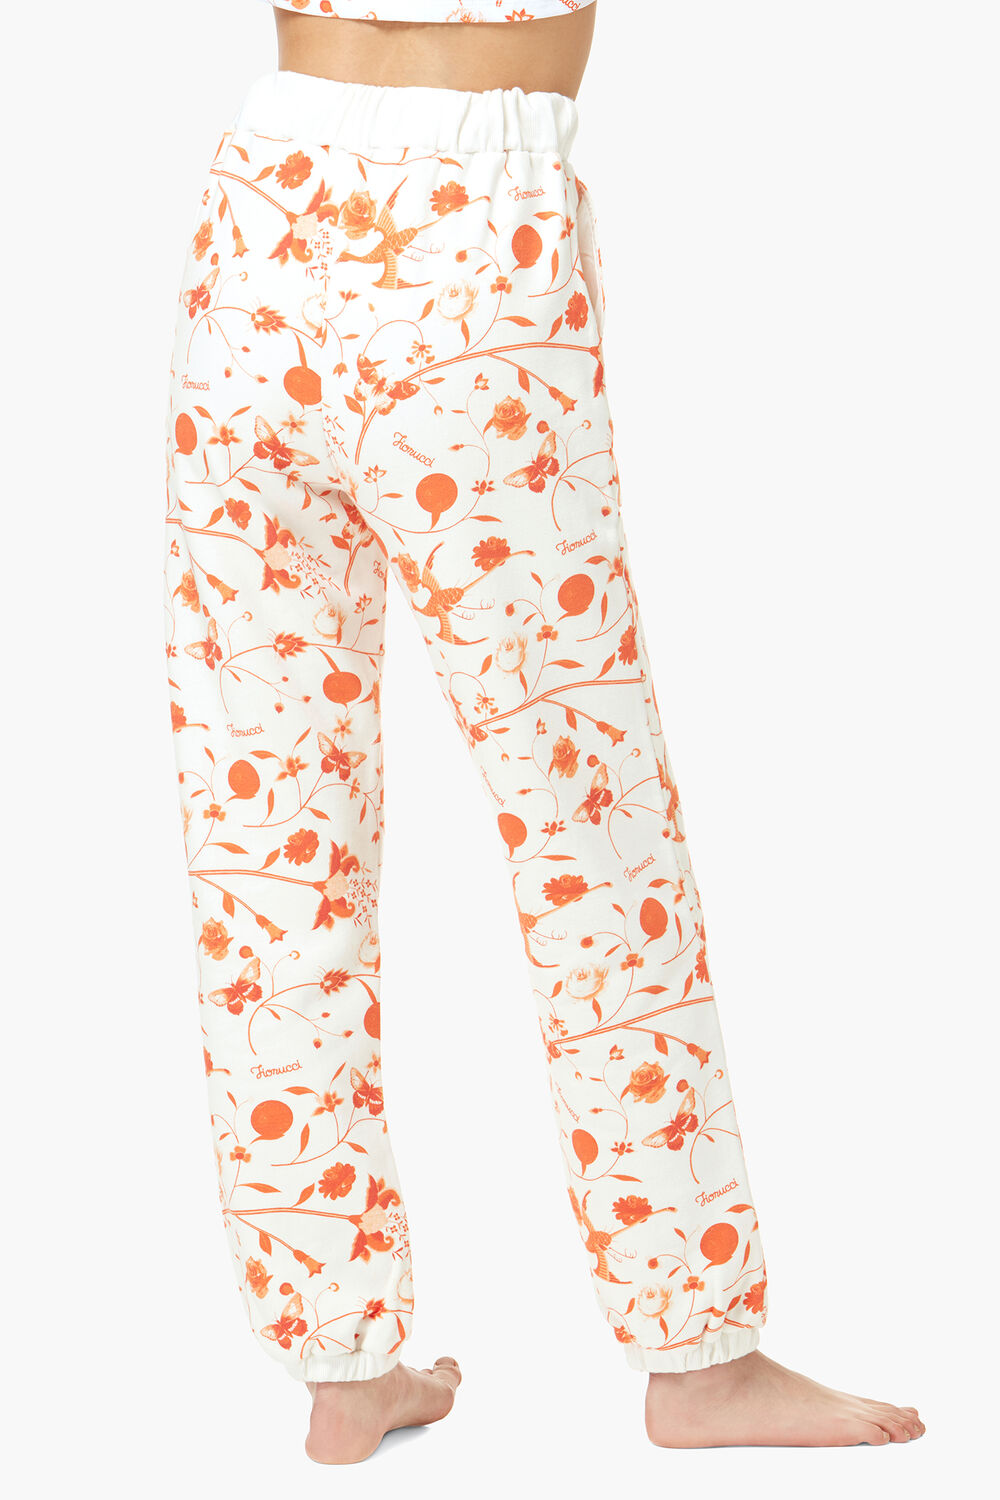 Lunar Capsule All Over Print Joggers White